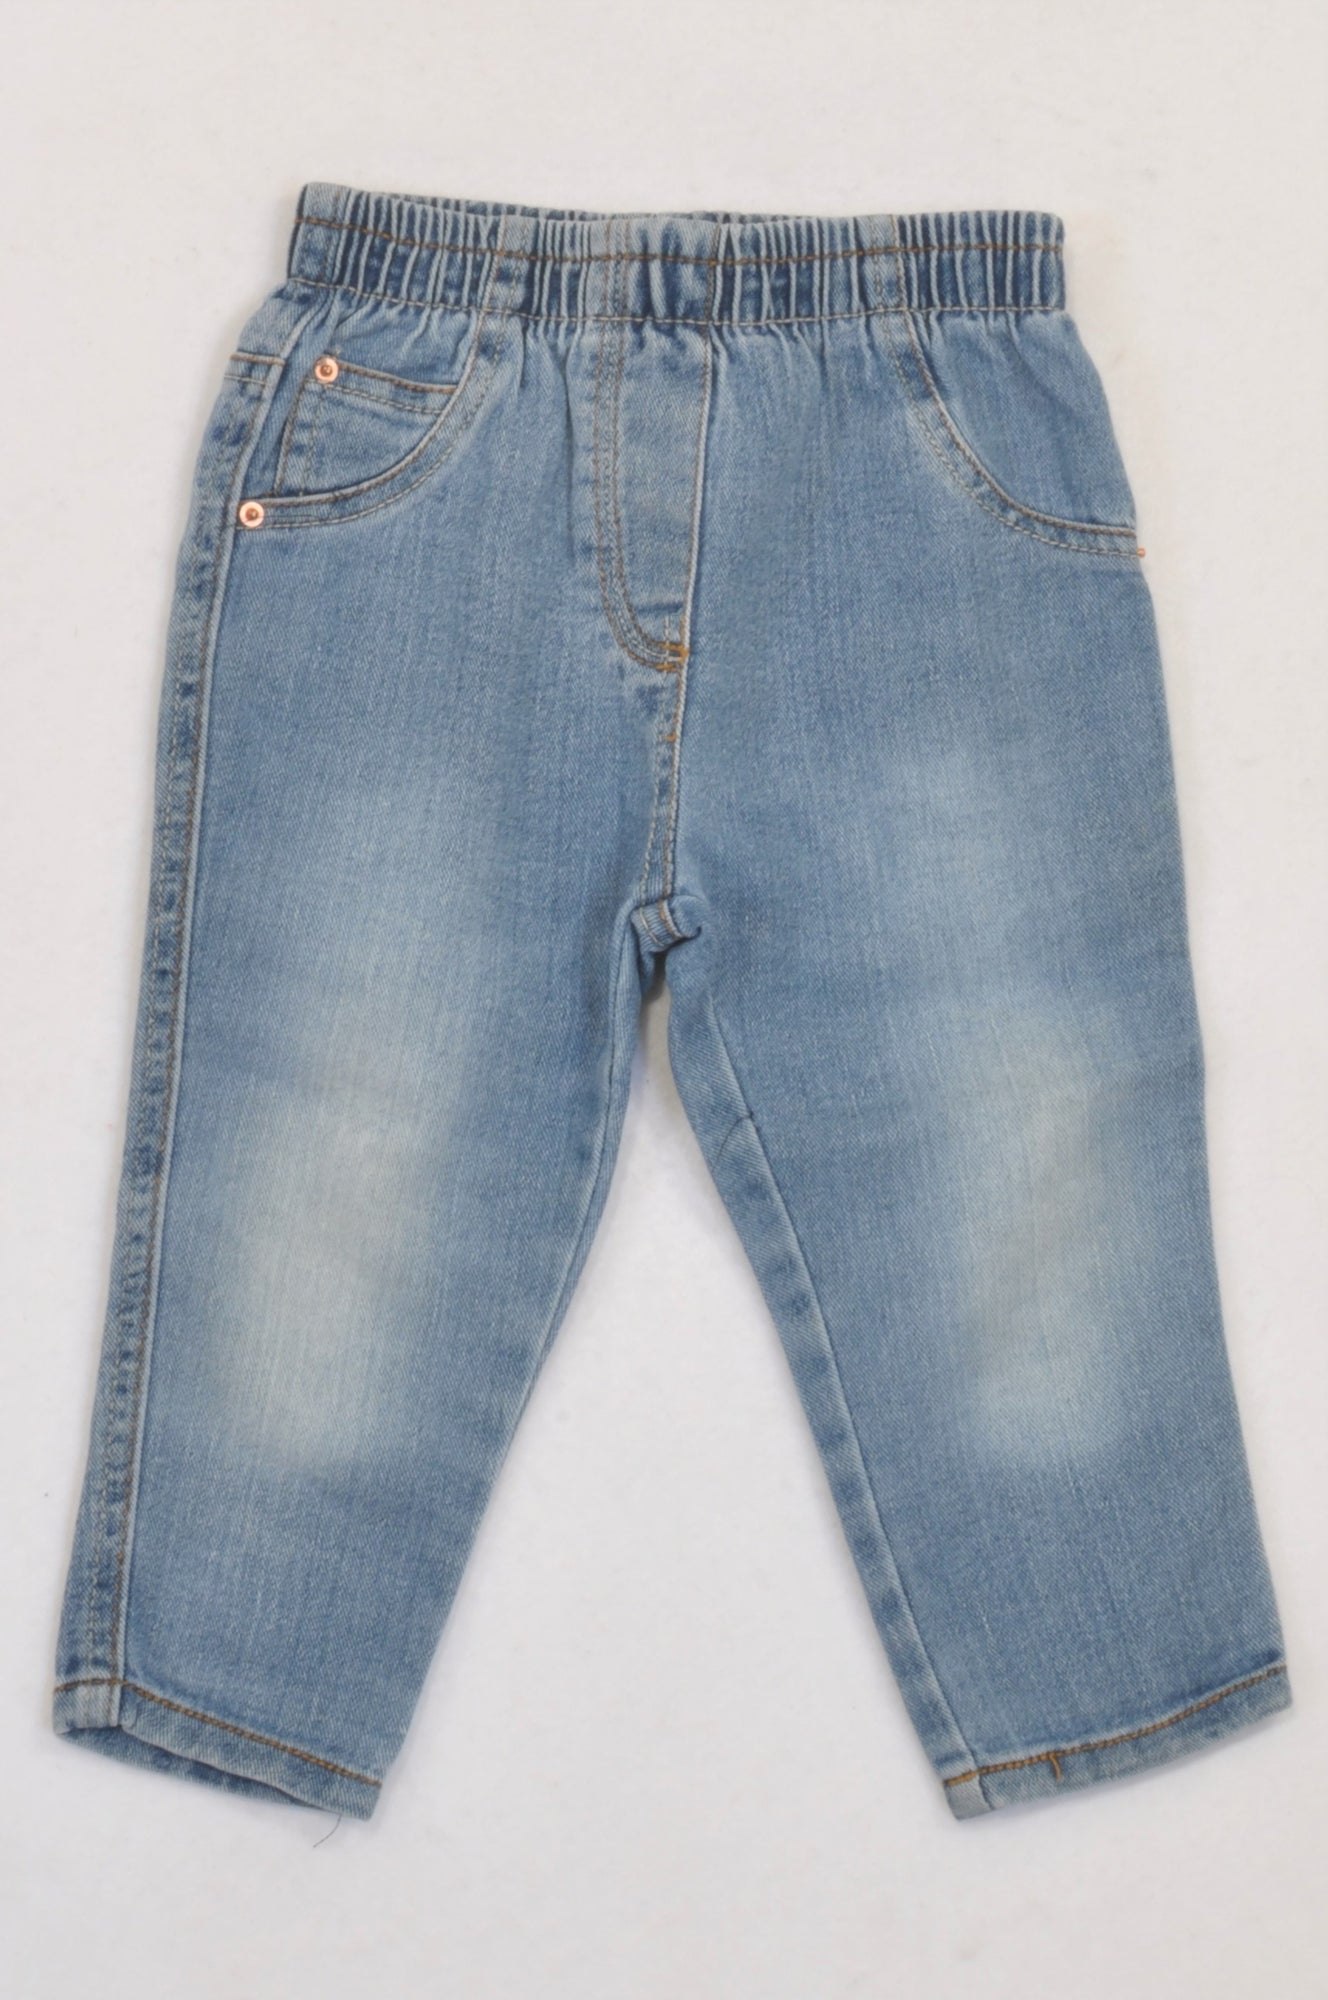 Woolworths Stone Washed Denim Jeans Boys 18-24 years